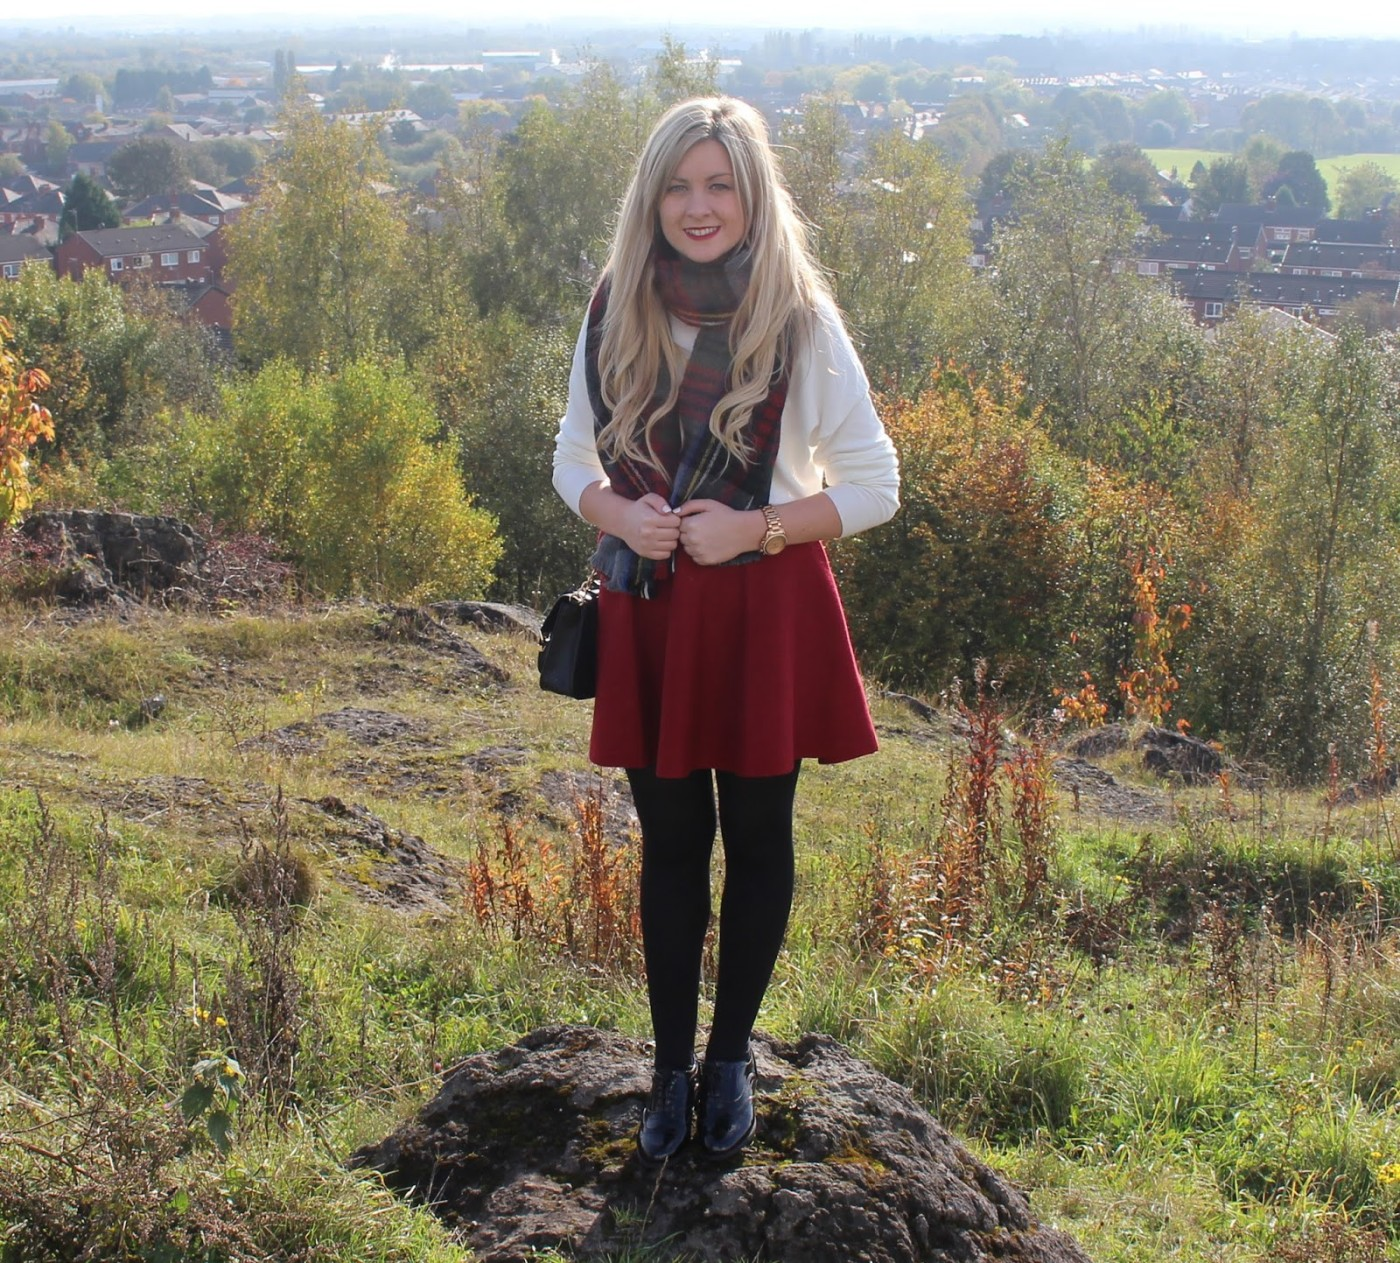 burgundy skirt. primark, autumn fashion, winter fashion, through chelsea's eyes,